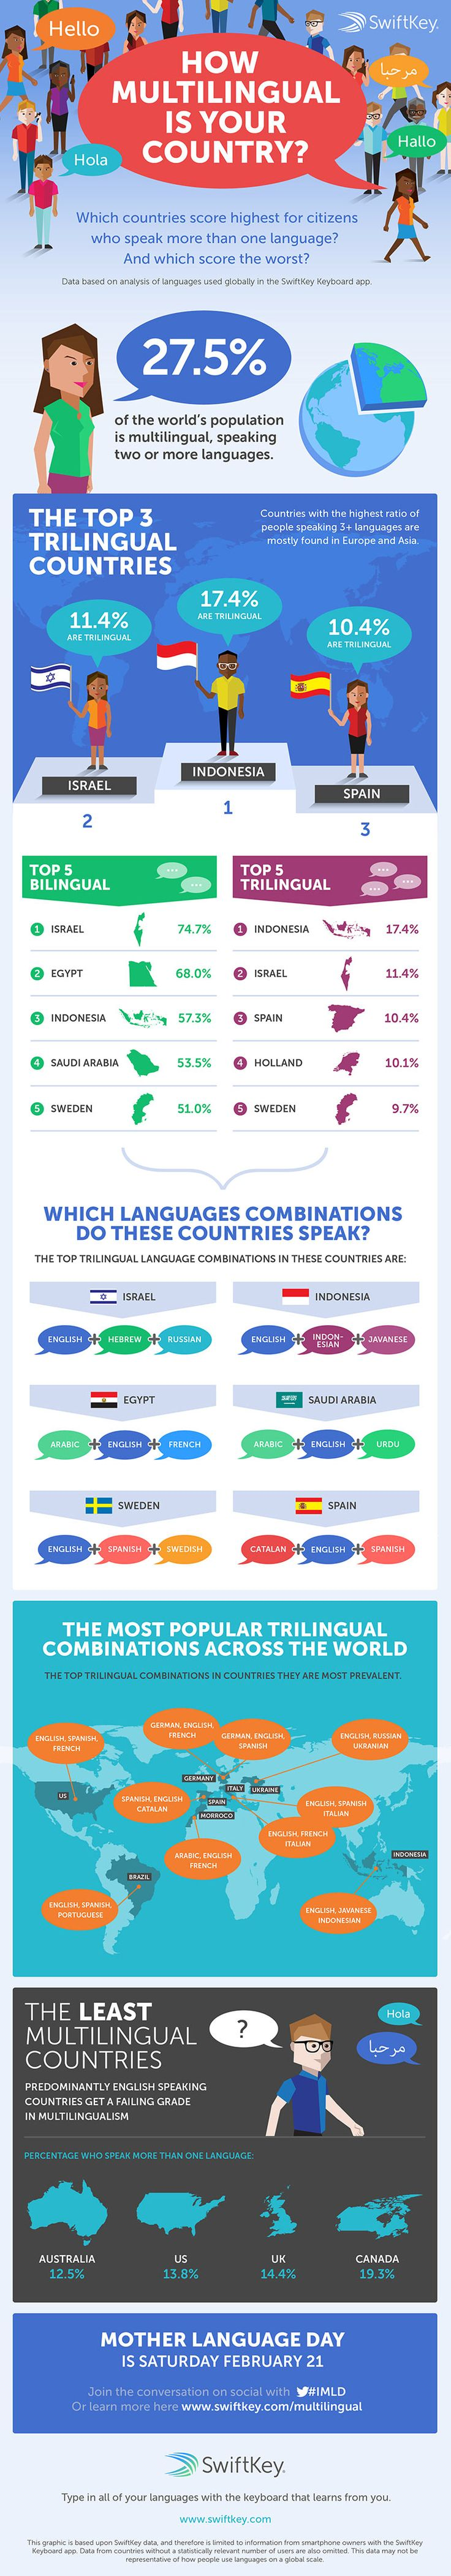 Indonesia Ranks As The Top Trilingual Country In The World - Top international languages in the world